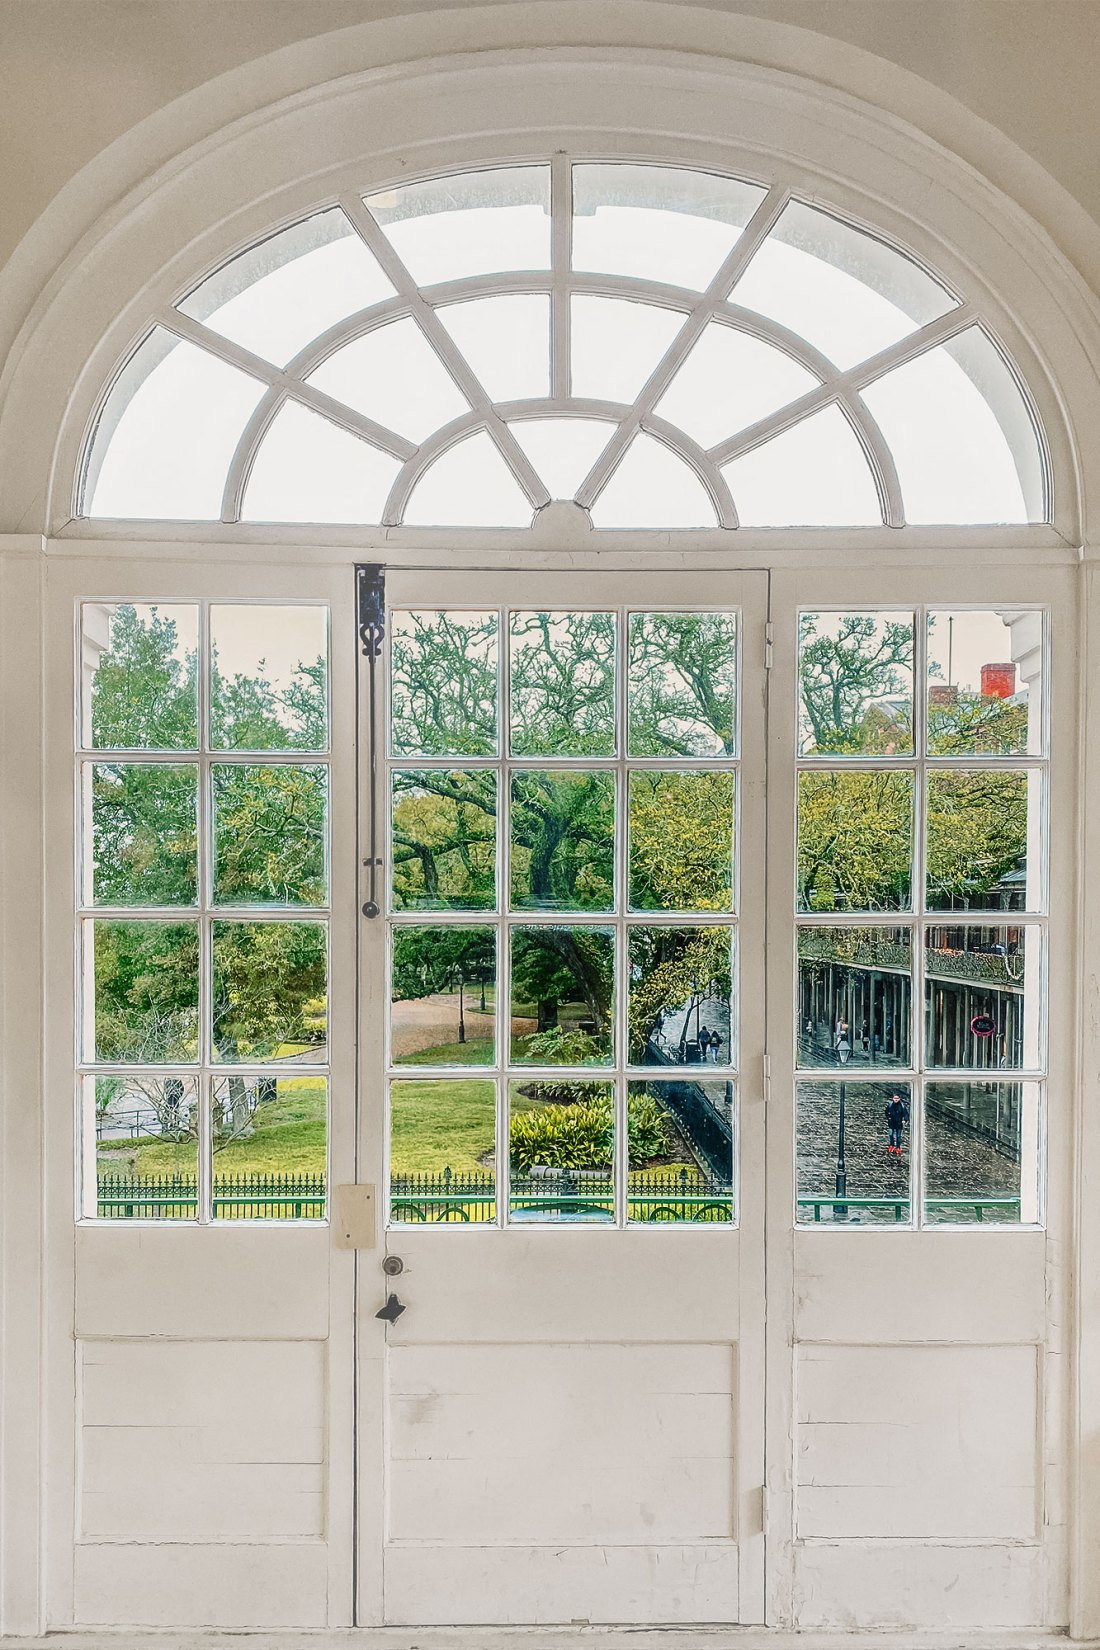 White window frame with green scene